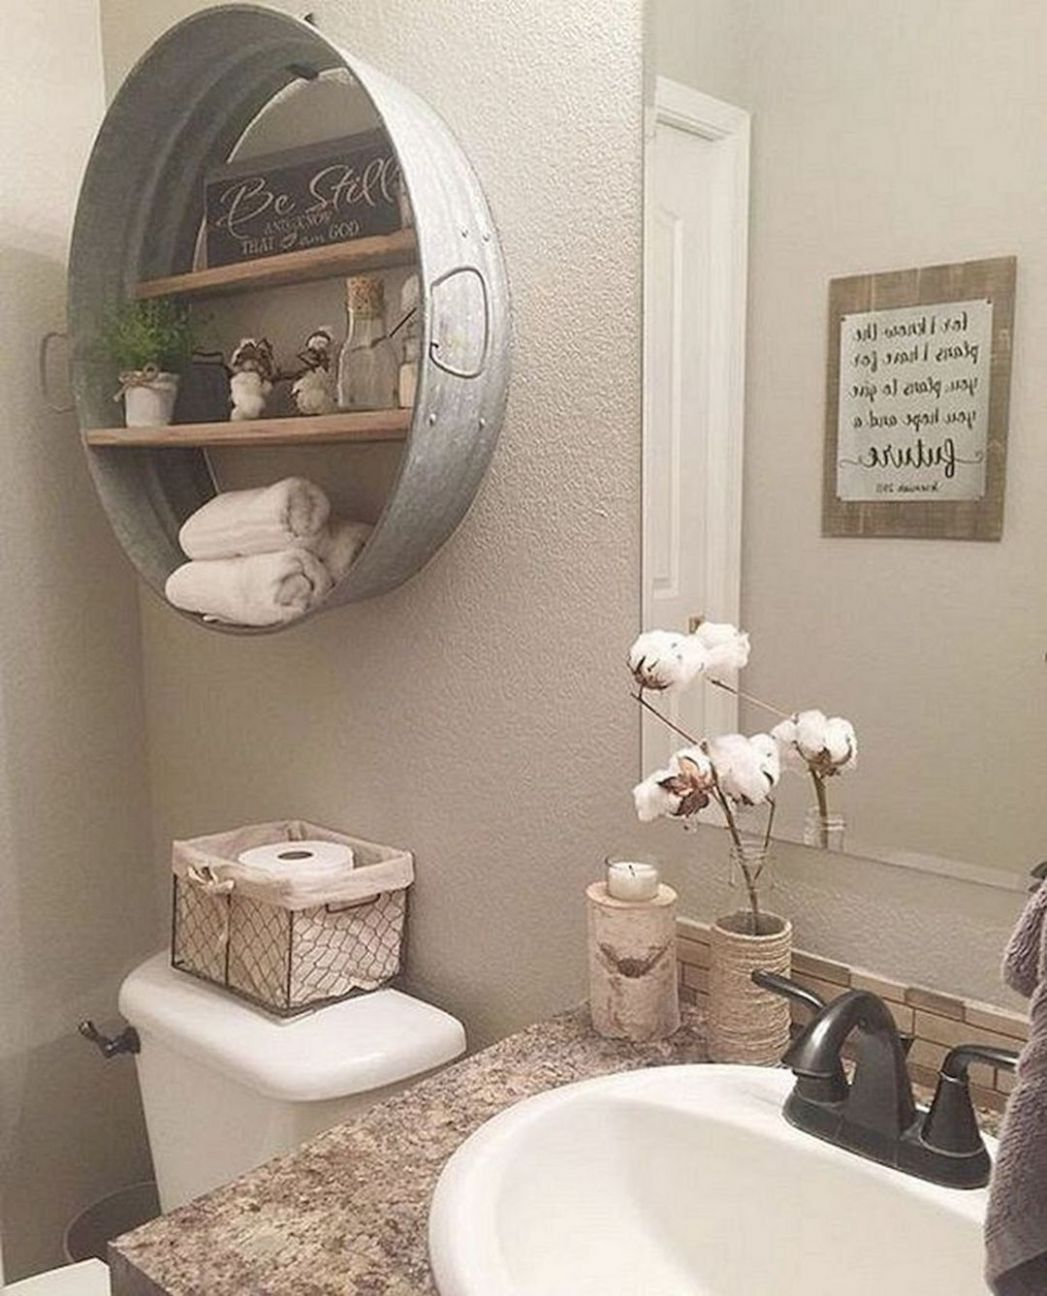 8 Extraordinary Bathroom Accessories Ideas For Your Home | Rustic ..